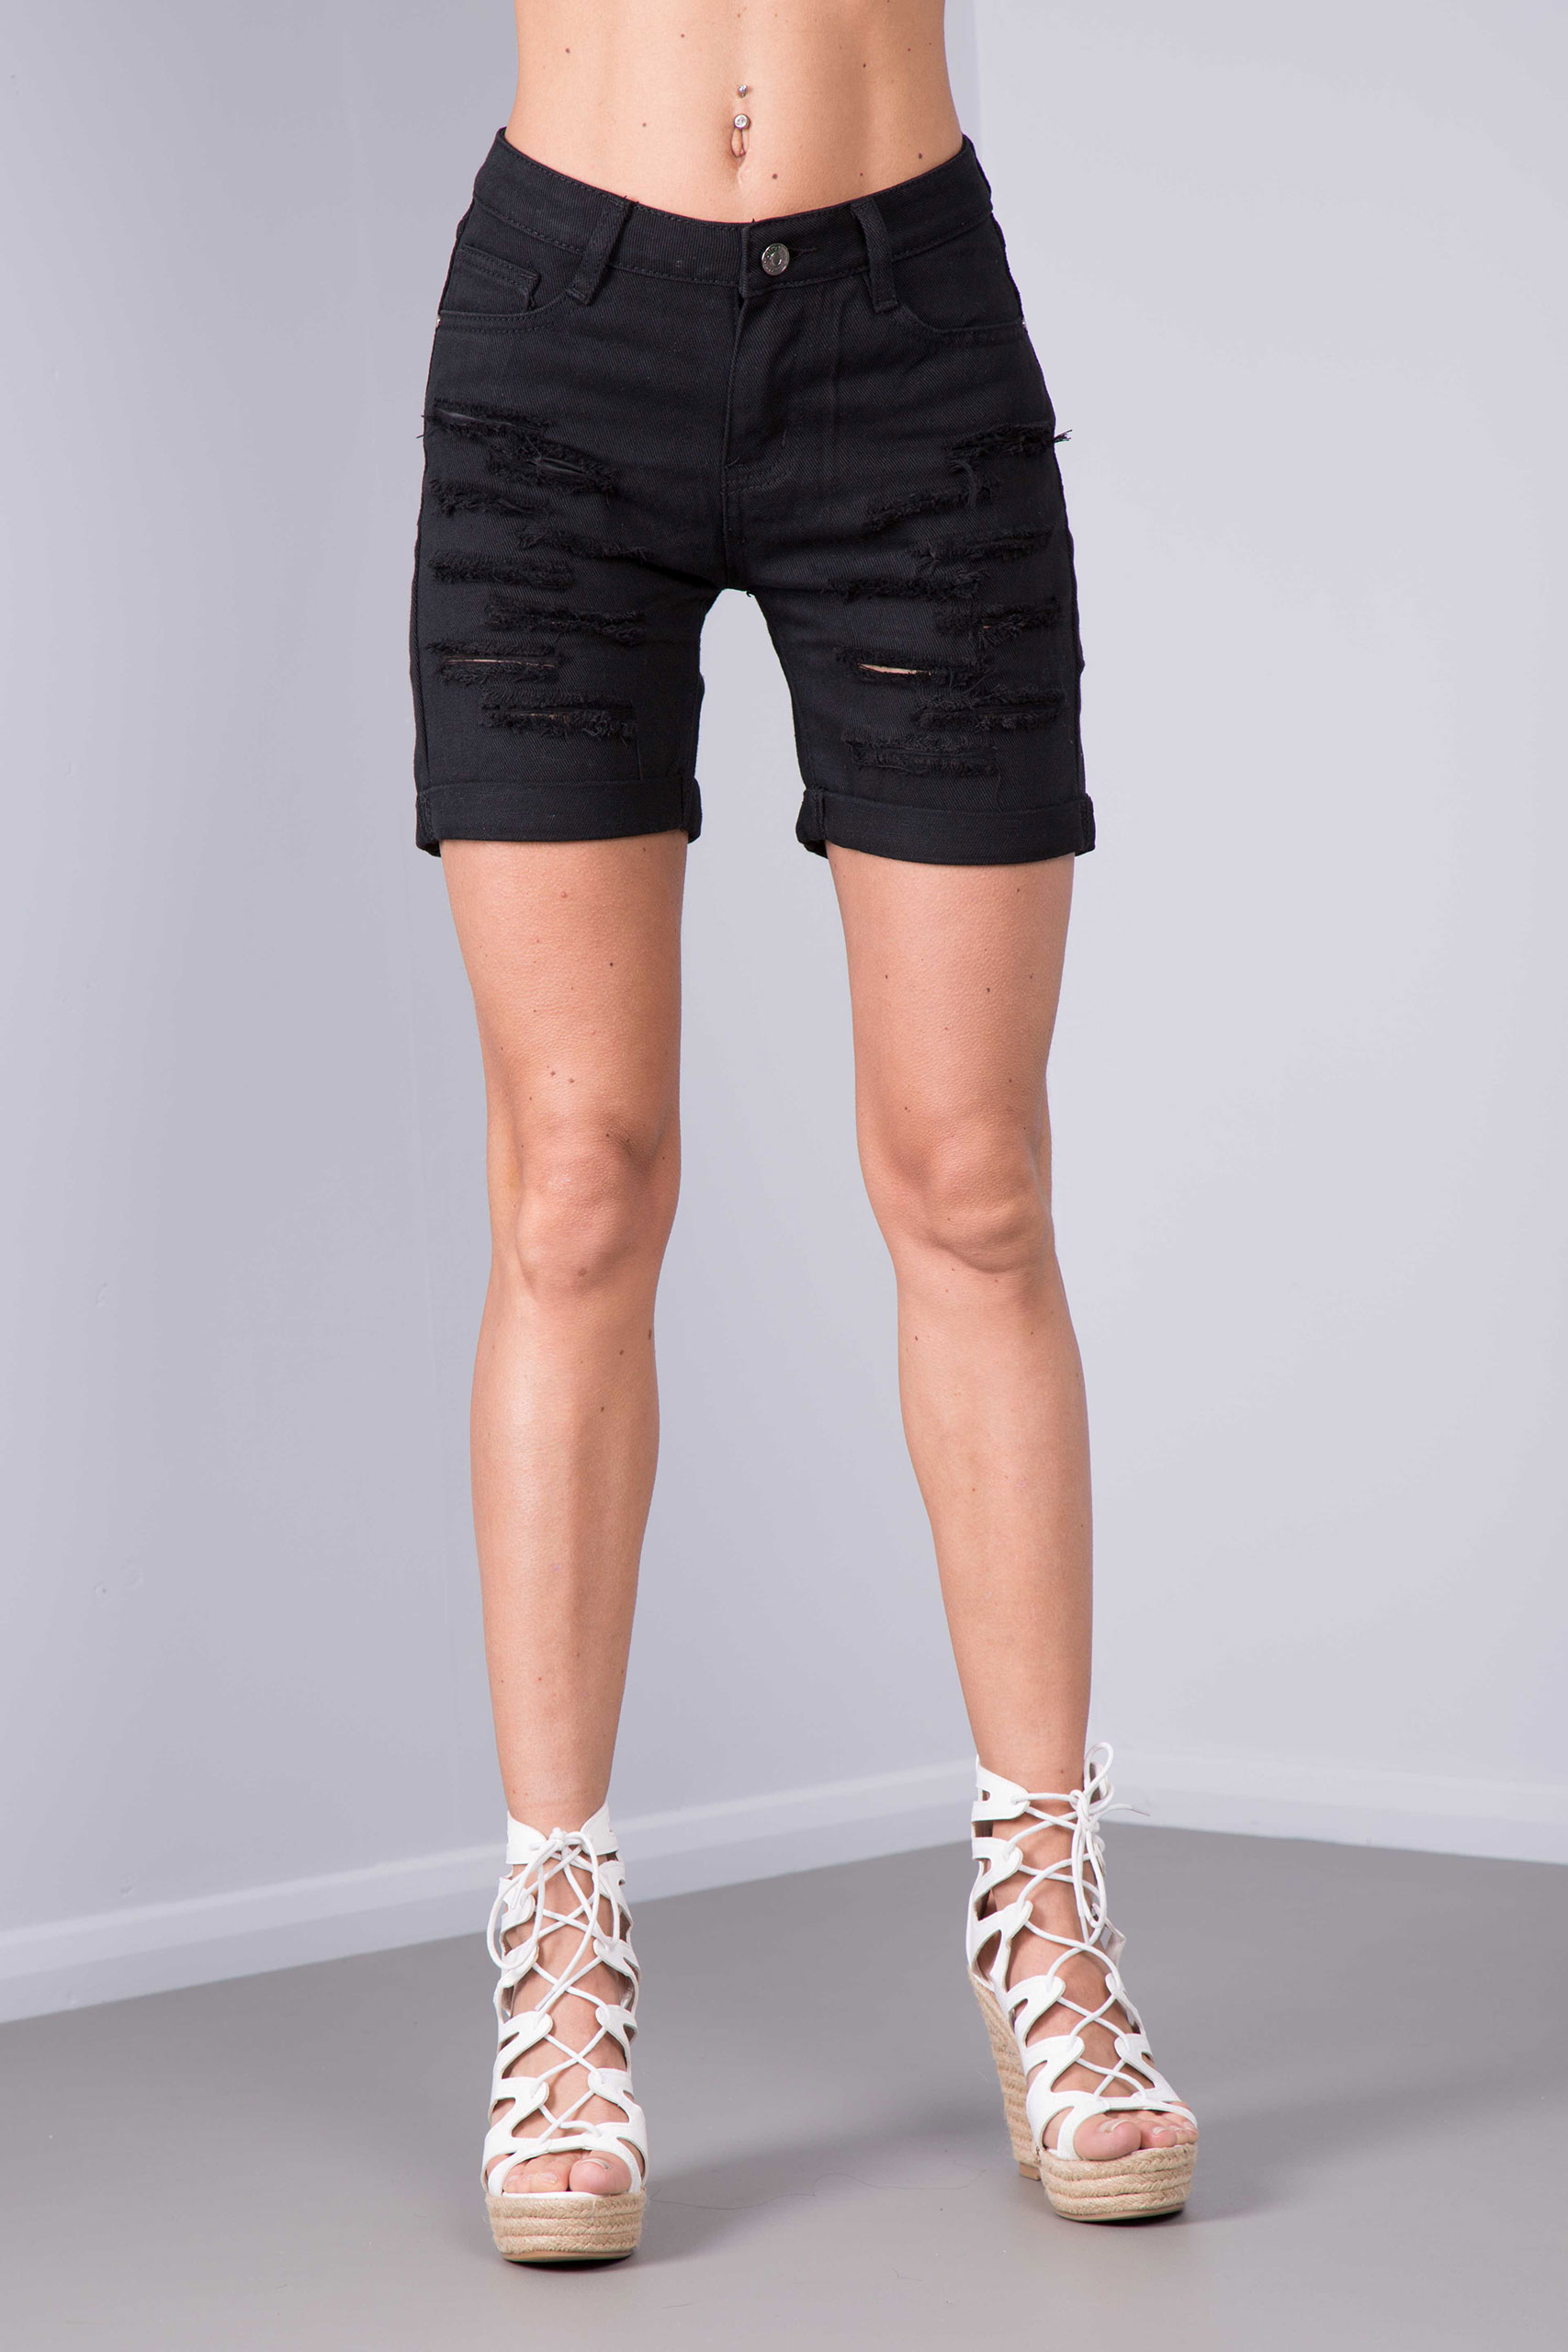 Find great deals on eBay for women knee length shorts. Shop with confidence.